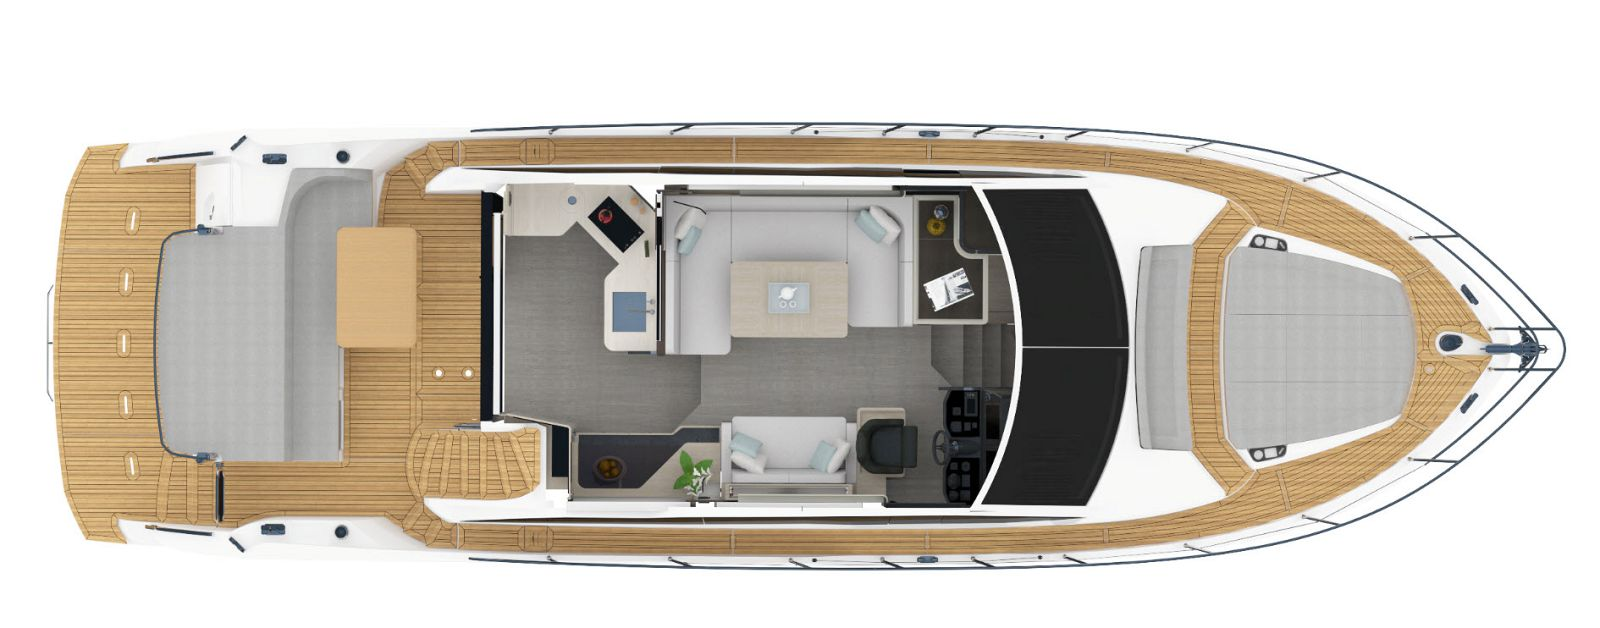 main deck layout of absolute 50 flybridge